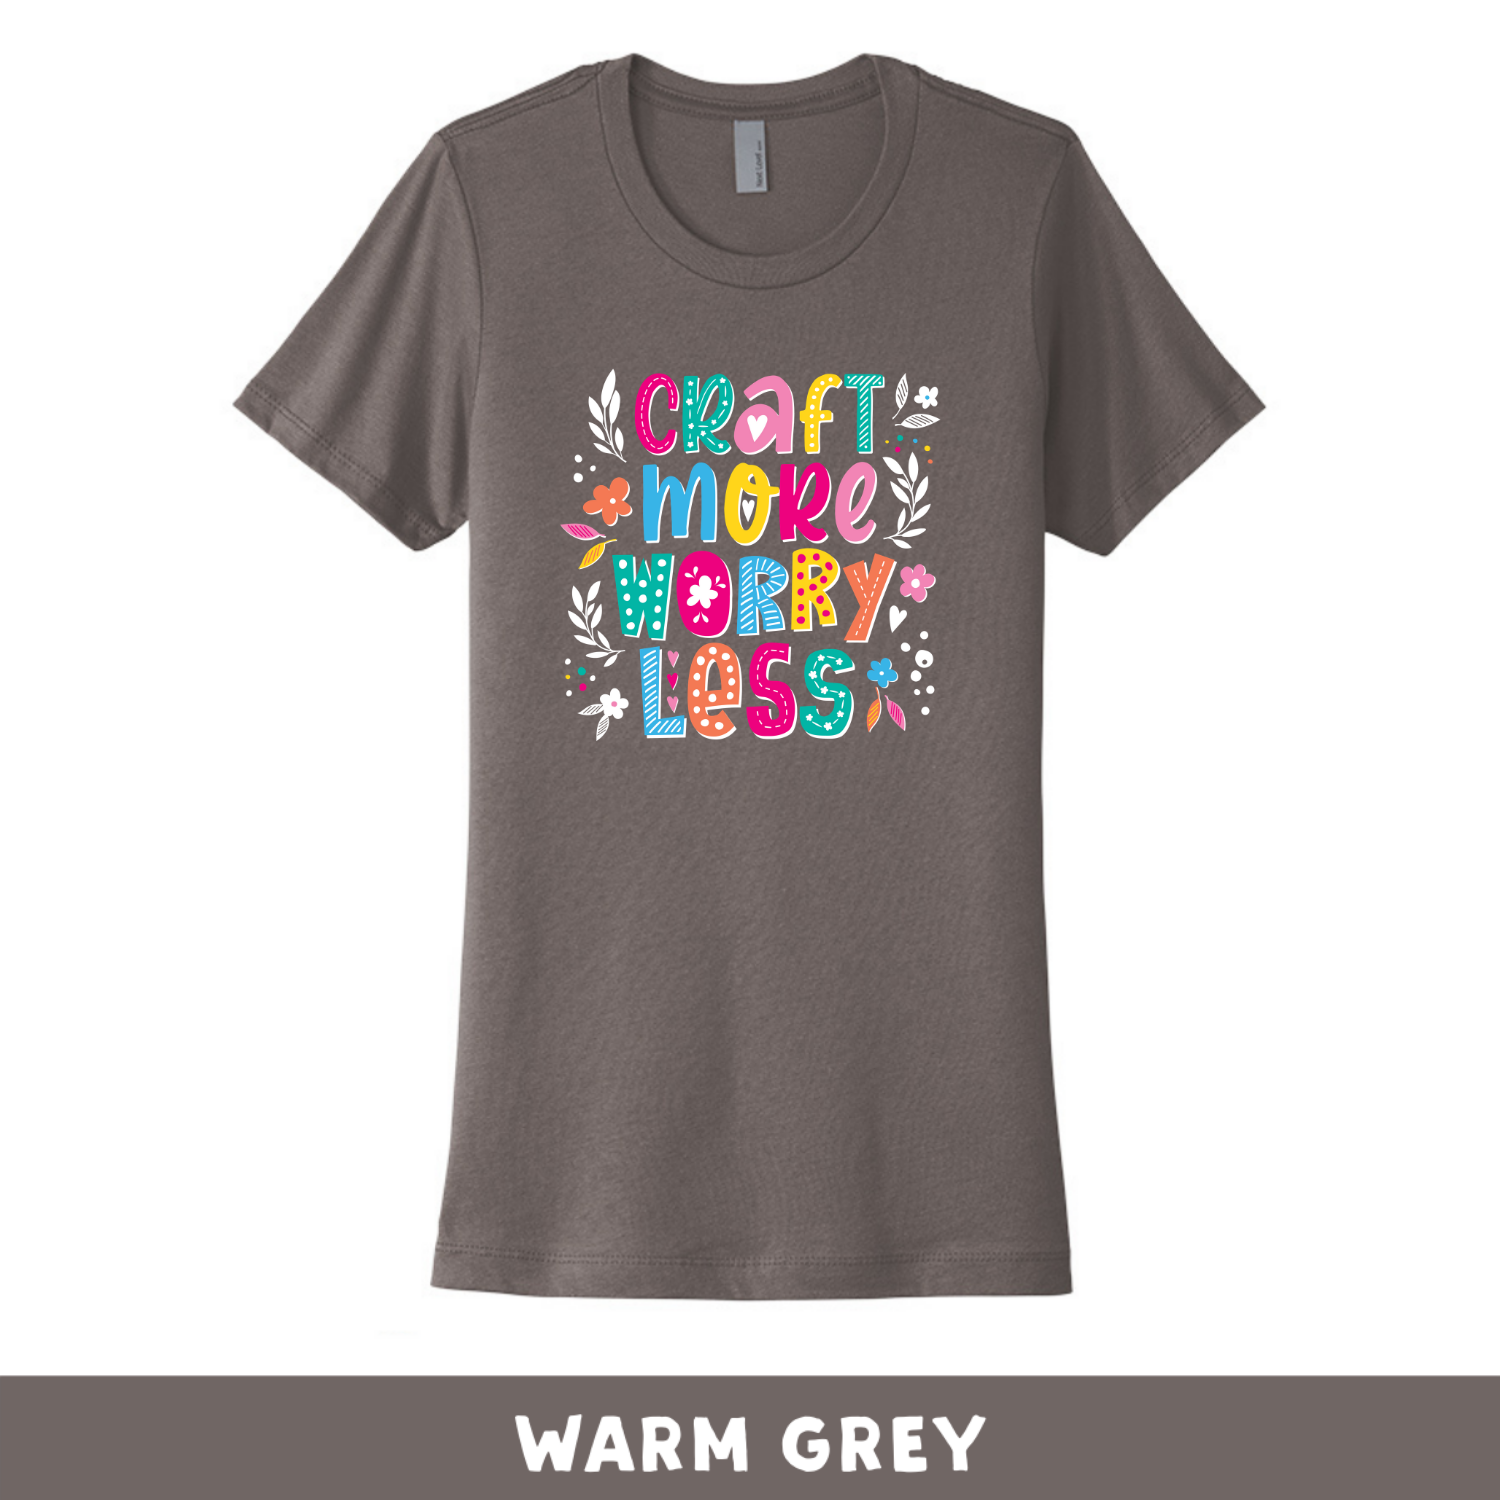 Warm Grey - Crew Neck Boyfriend Tee - Craft More Worry Less